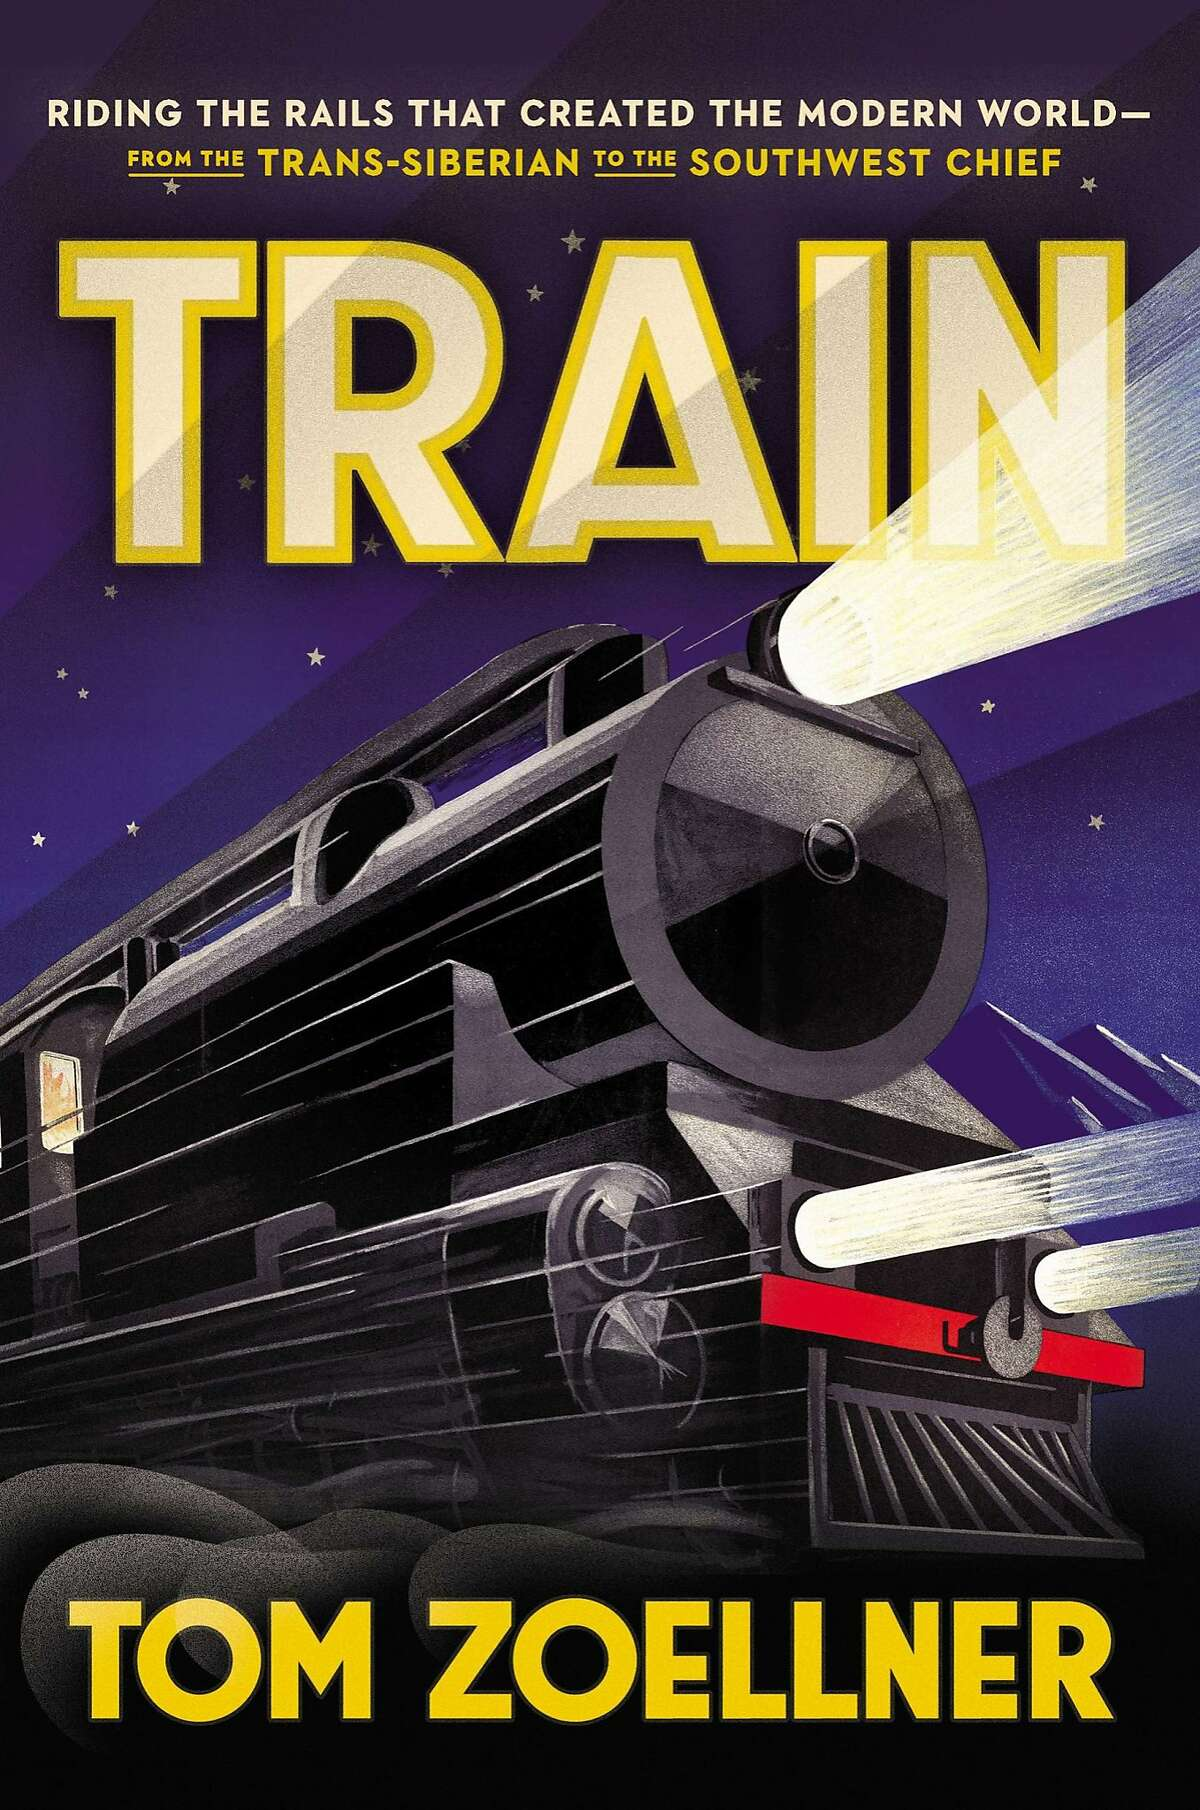 Train: Riding the Rails That Created the Modern World-from the Trans-Siberian to the Southwest Chief, by Tom Zoellner